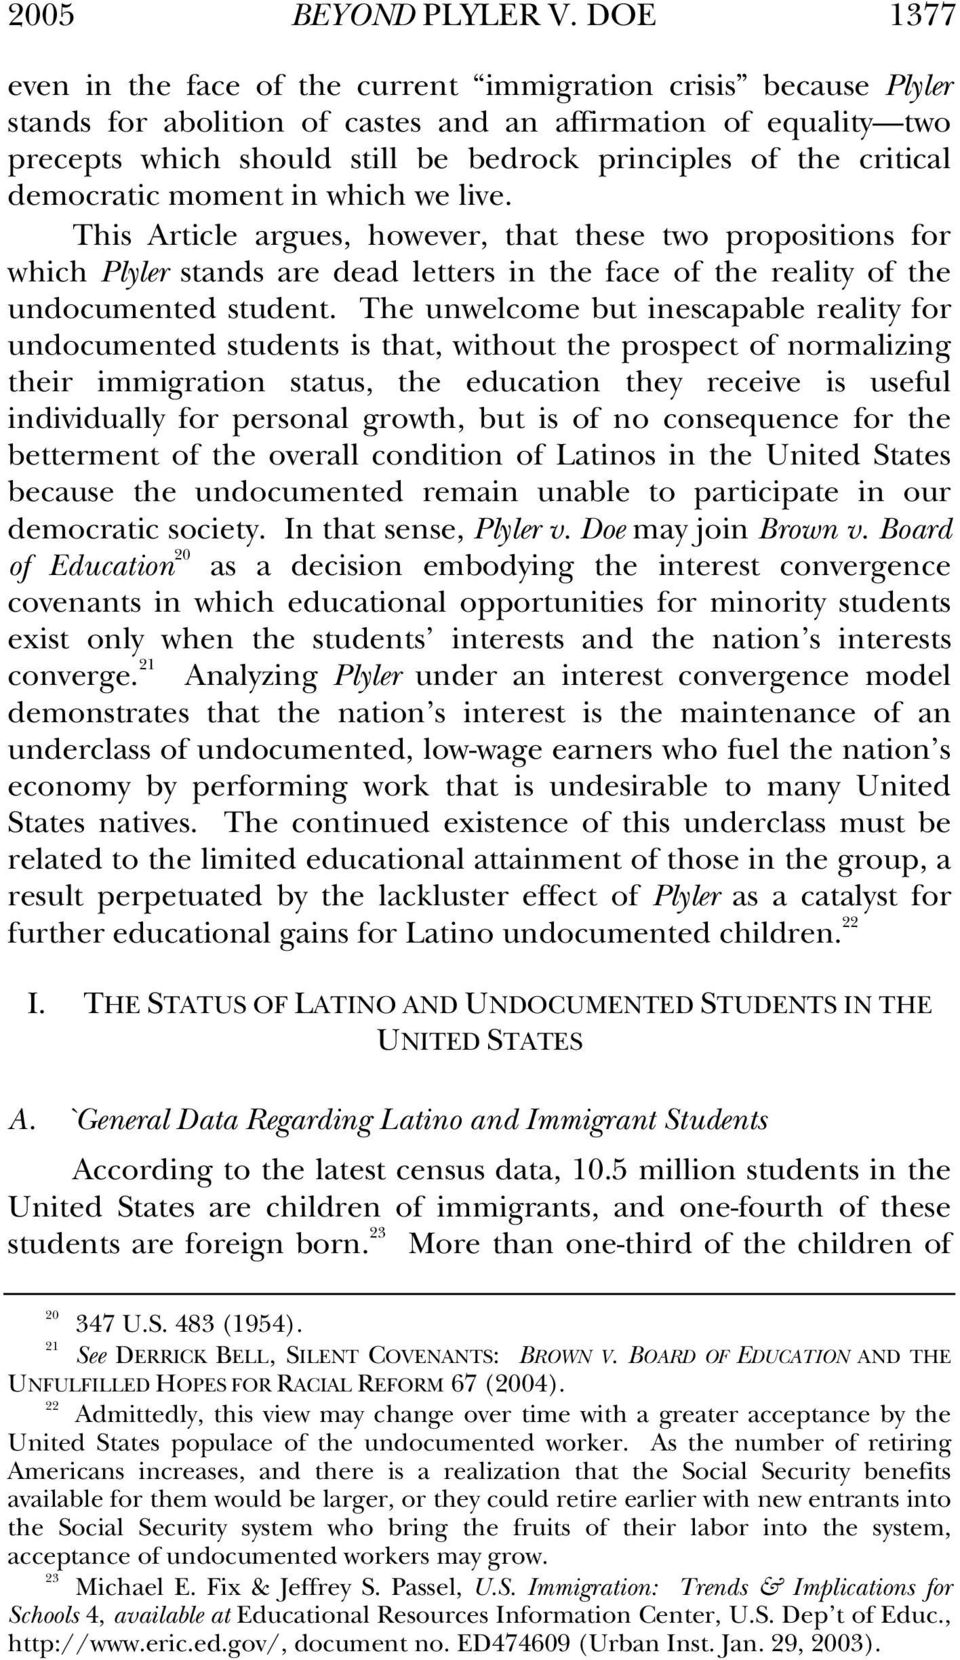 critical democratic moment in which we live. This Article argues, however, that these two propositions for which Plyler stands are dead letters in the face of the reality of the undocumented student.